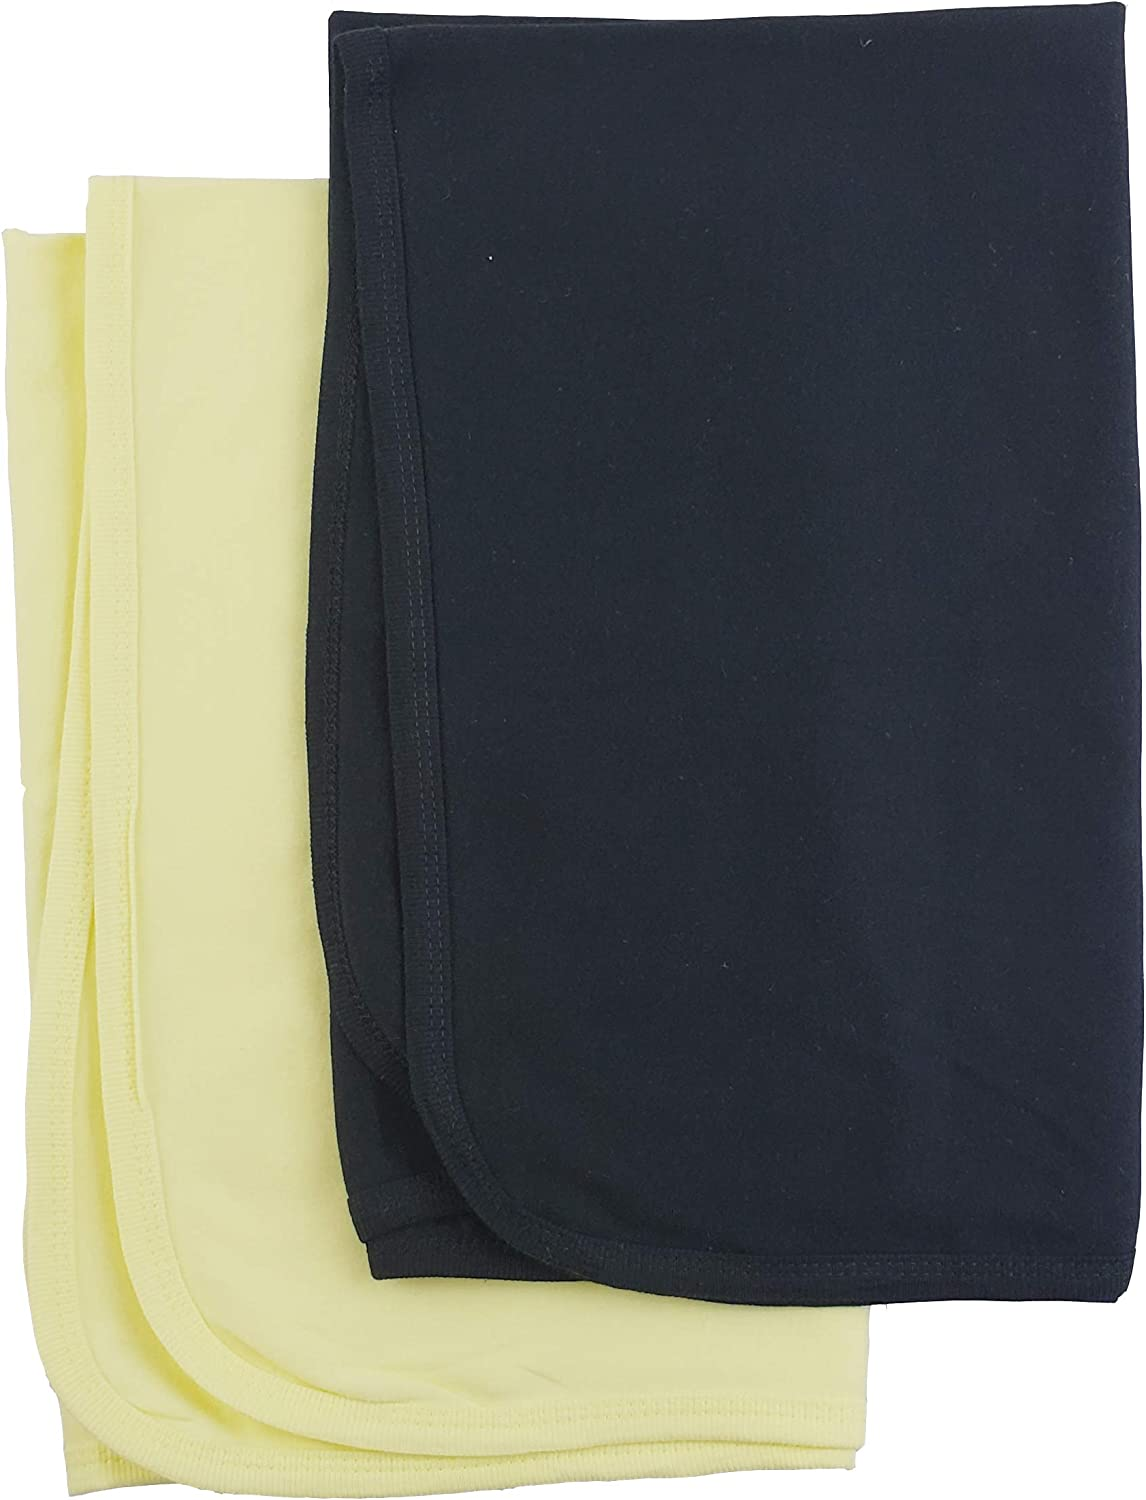 bambini Department Direct store store 2 Receiving Black Blankets Yellow